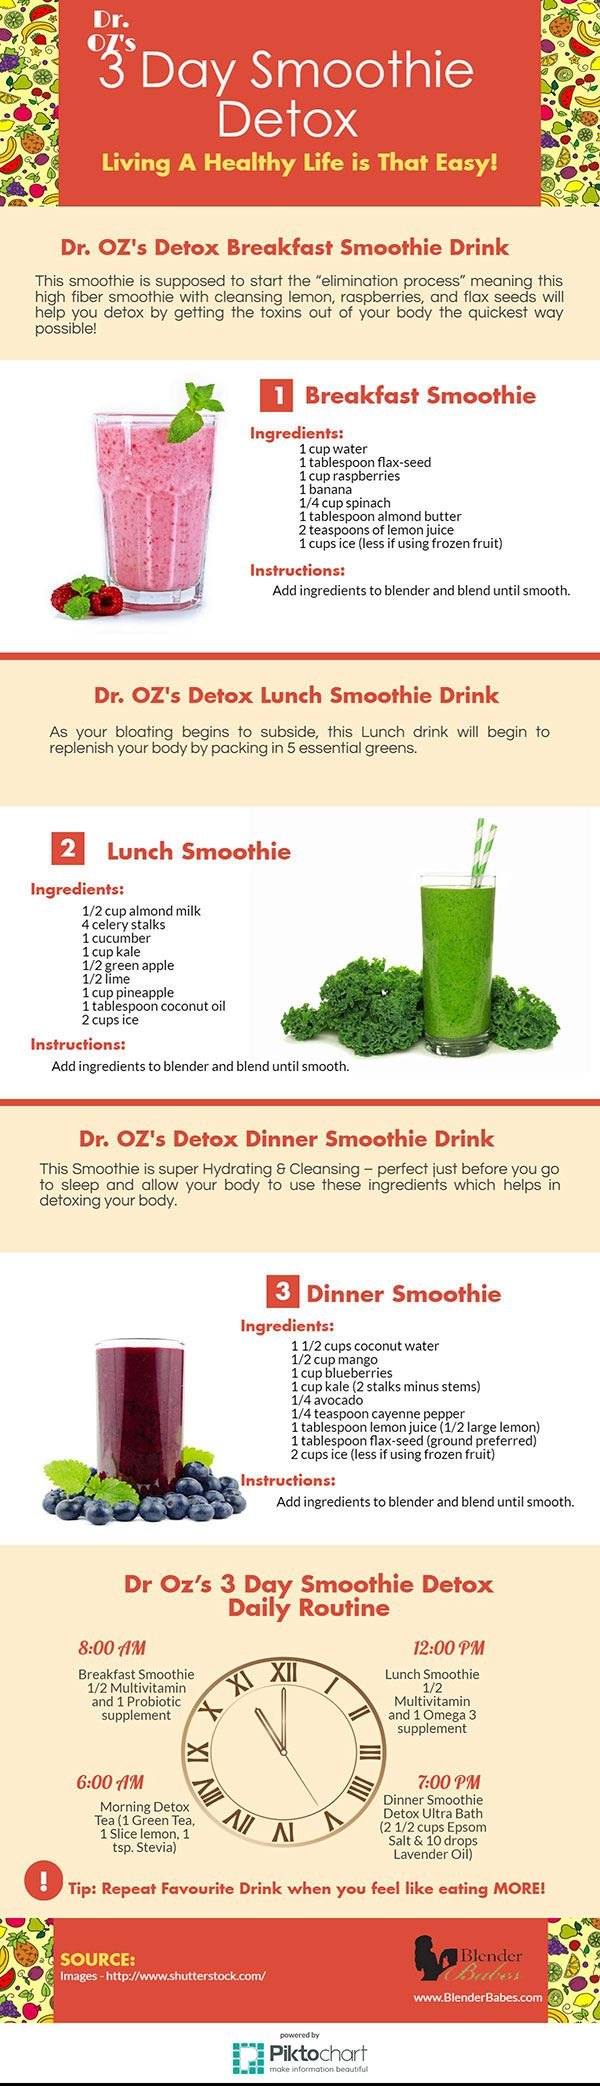 Dr Oz Smoothie Detox Recipes - a 3 Day Smoothie Cleanse with healthy smoothies for breakfast, lunch and dinner. Click for a printable one sheet